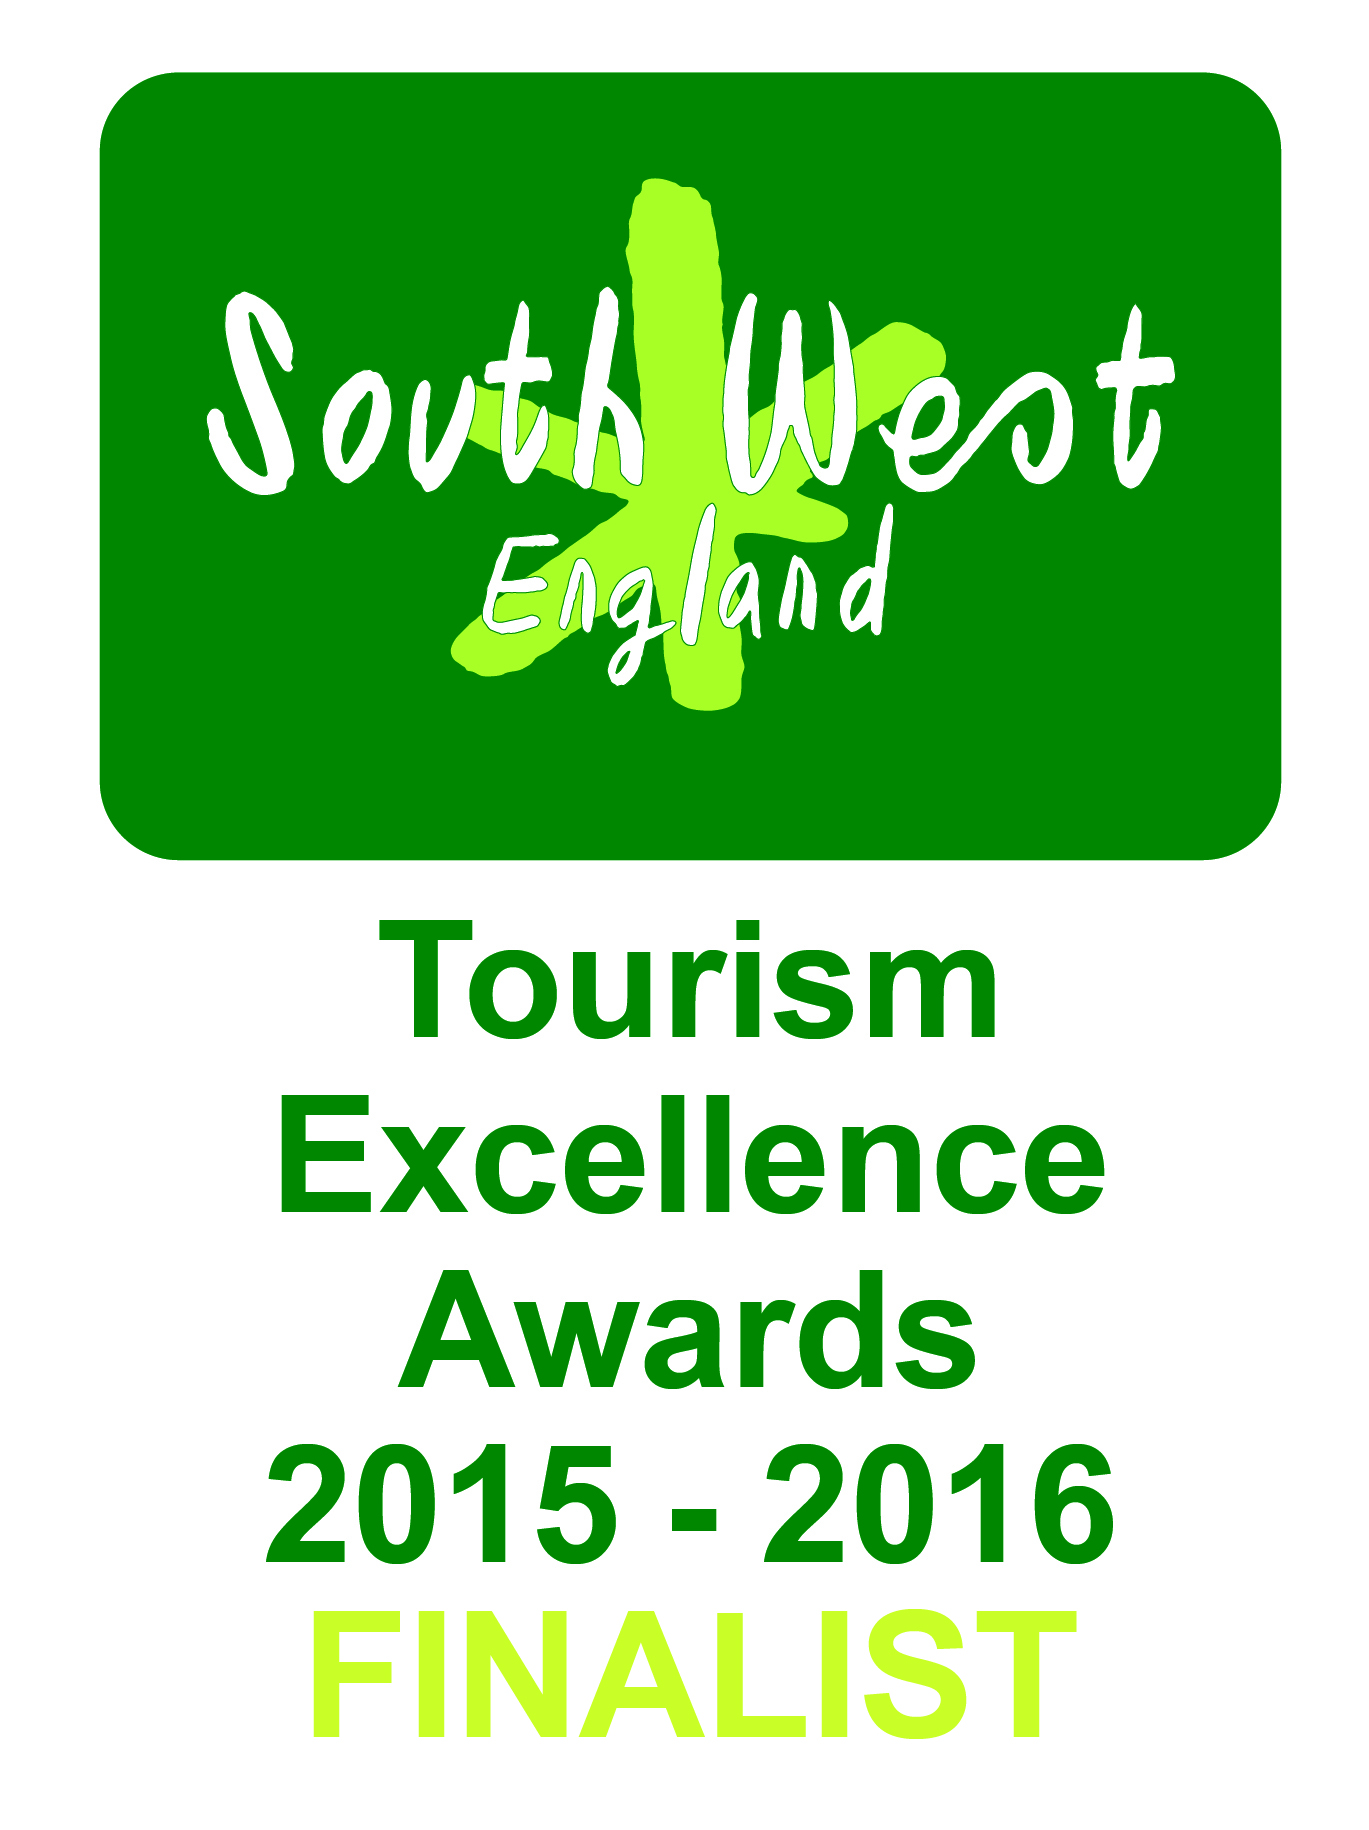 South West Tourism Excellence Awards 2015/16